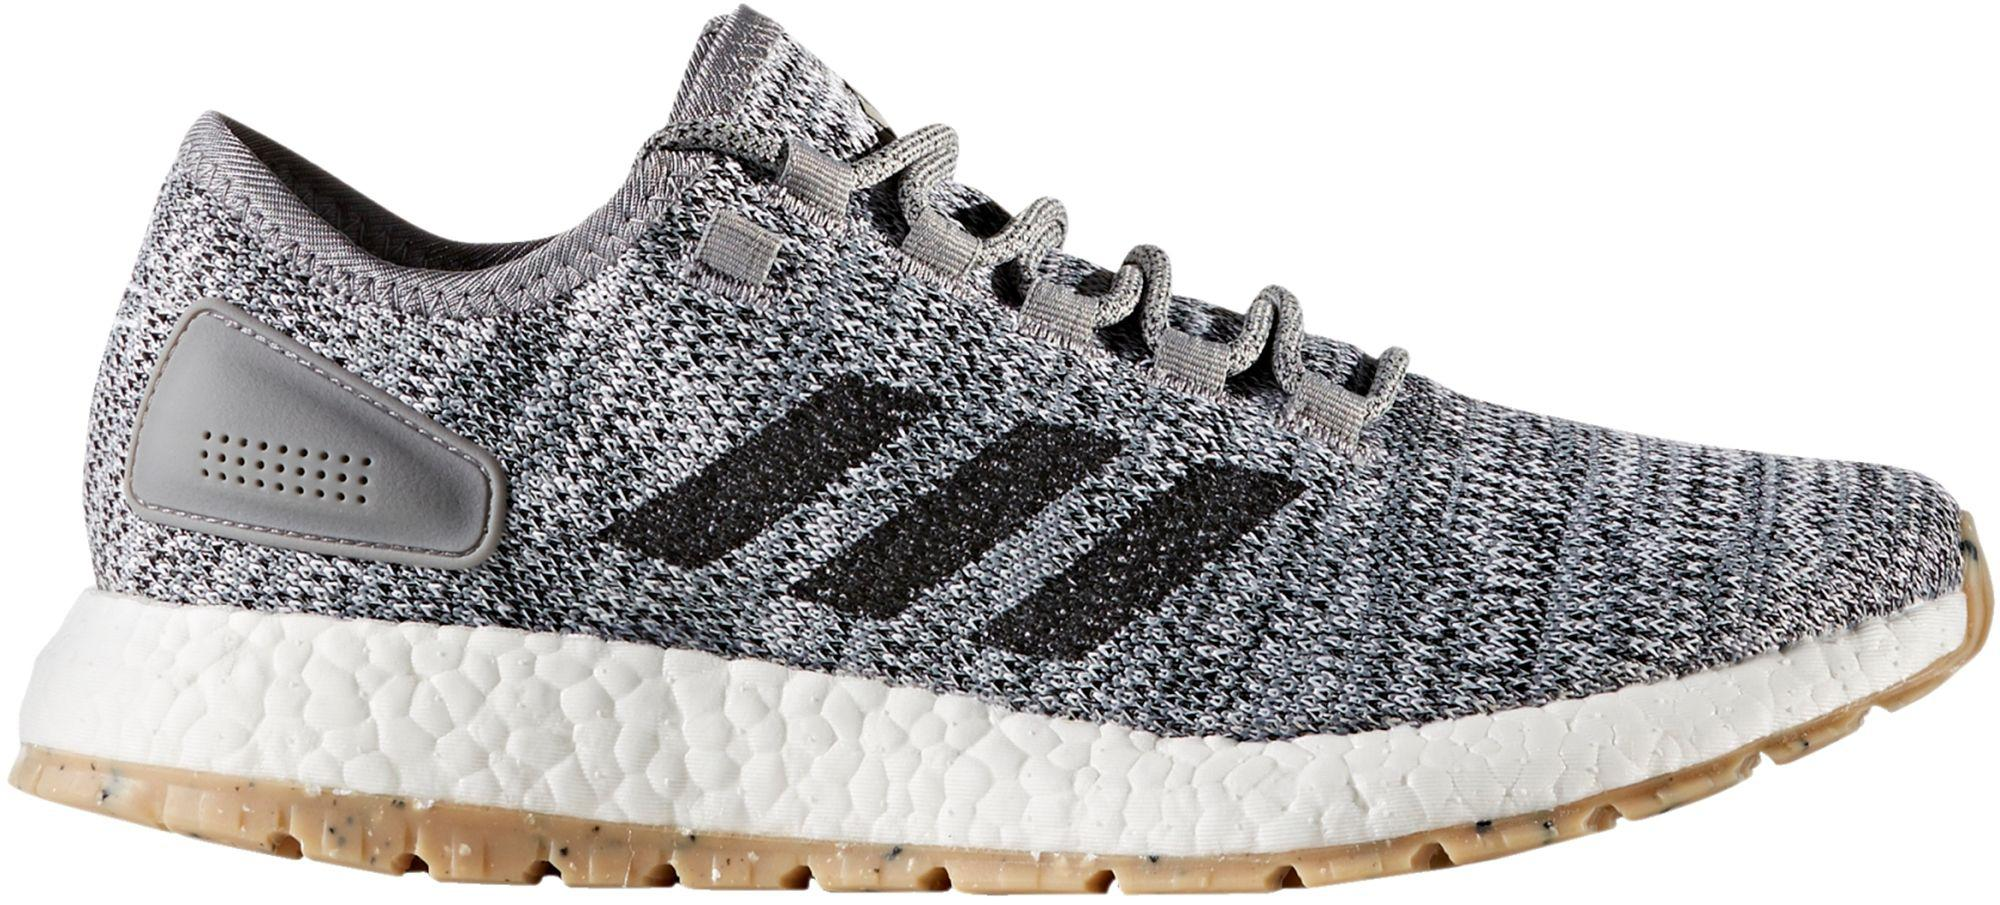 44ef9f857 ... 50% off lyst adidas pureboost all terrain running shoes in gray for men  24c67 62b54